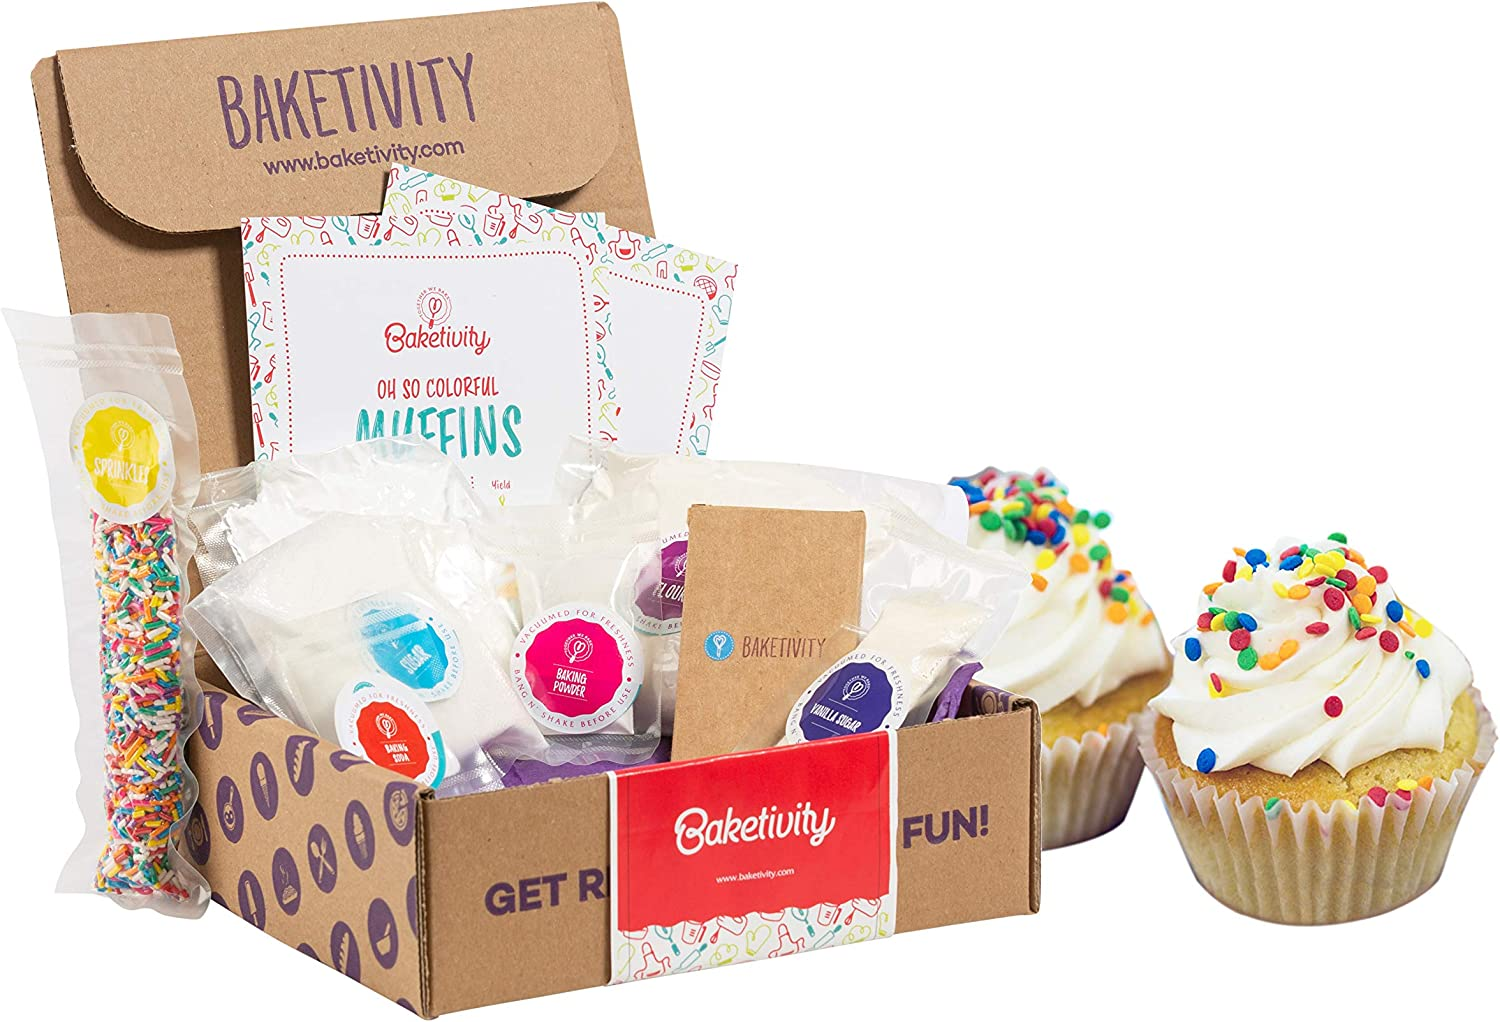 BAKETIVITY Kids Baking DIY Activity Kit - Bake Delicious Funfetti Muffins with Pre-Measured Ingredients – Best Gift Idea for Boys and Girls Ages 6-12